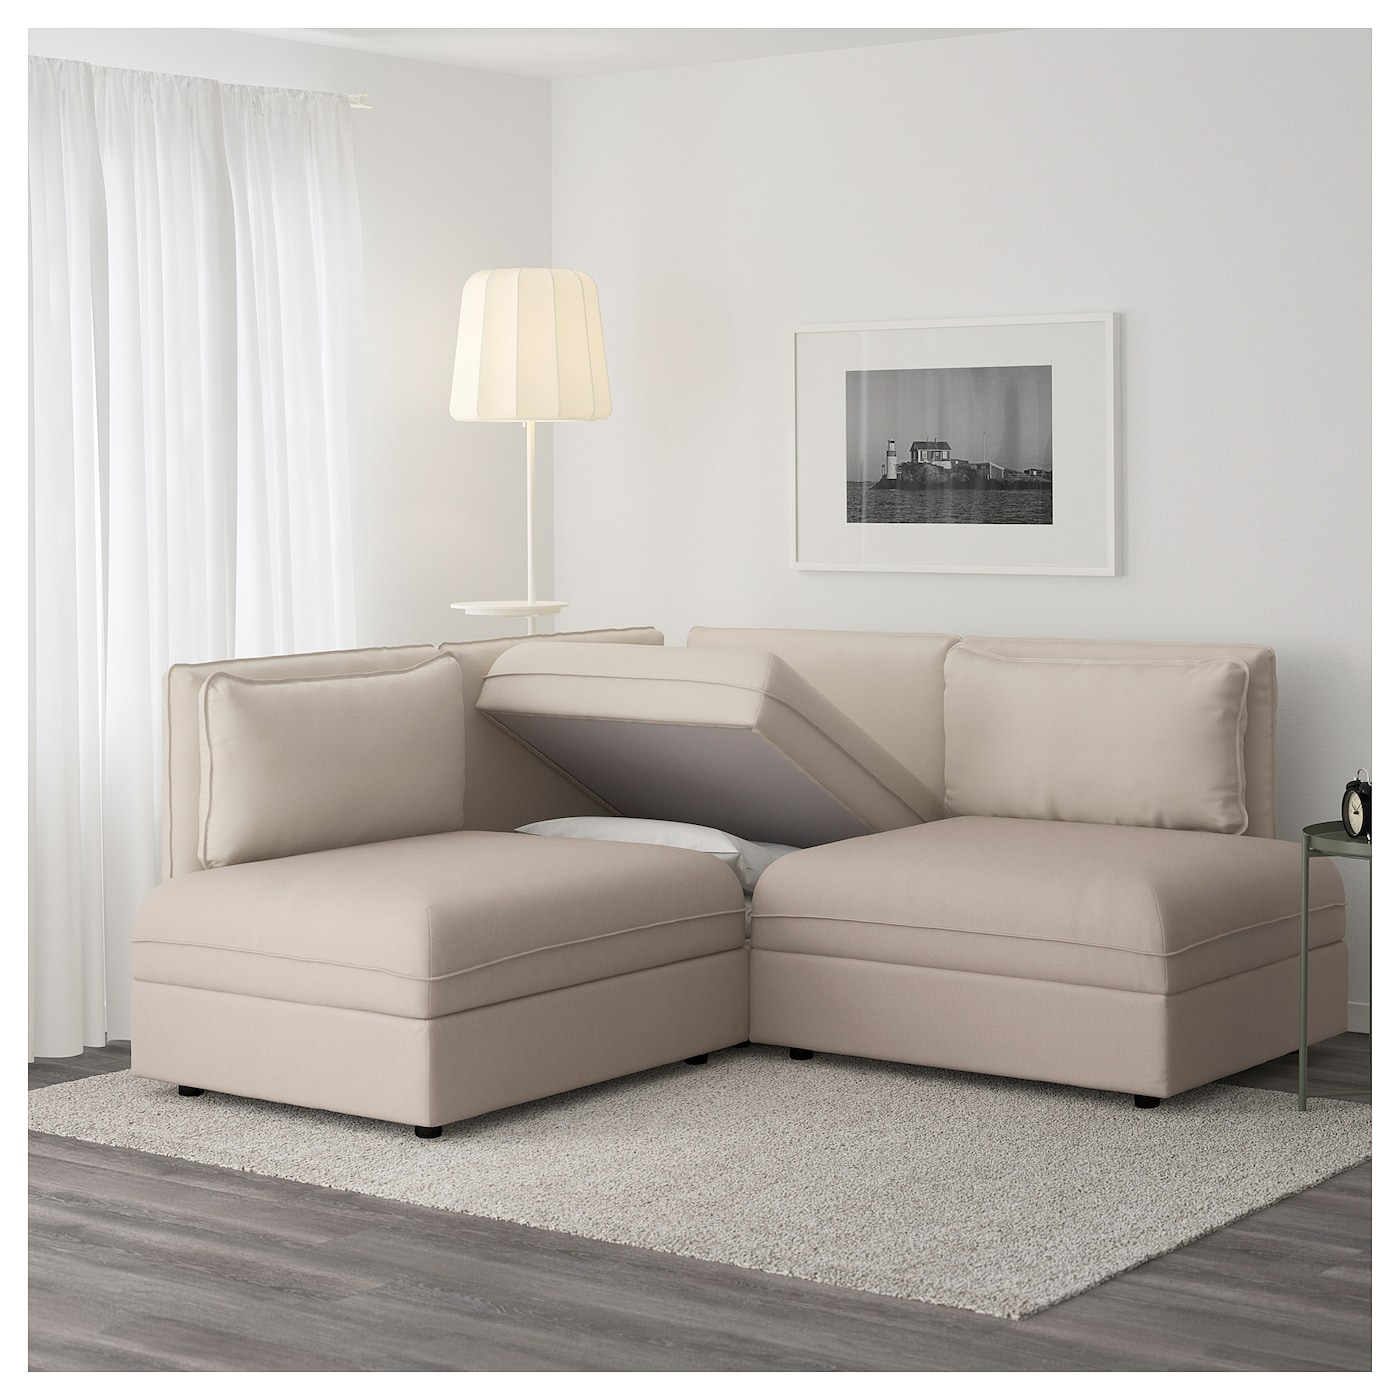 IKEA VALLENTUNA 3-seat corner sofa with bed